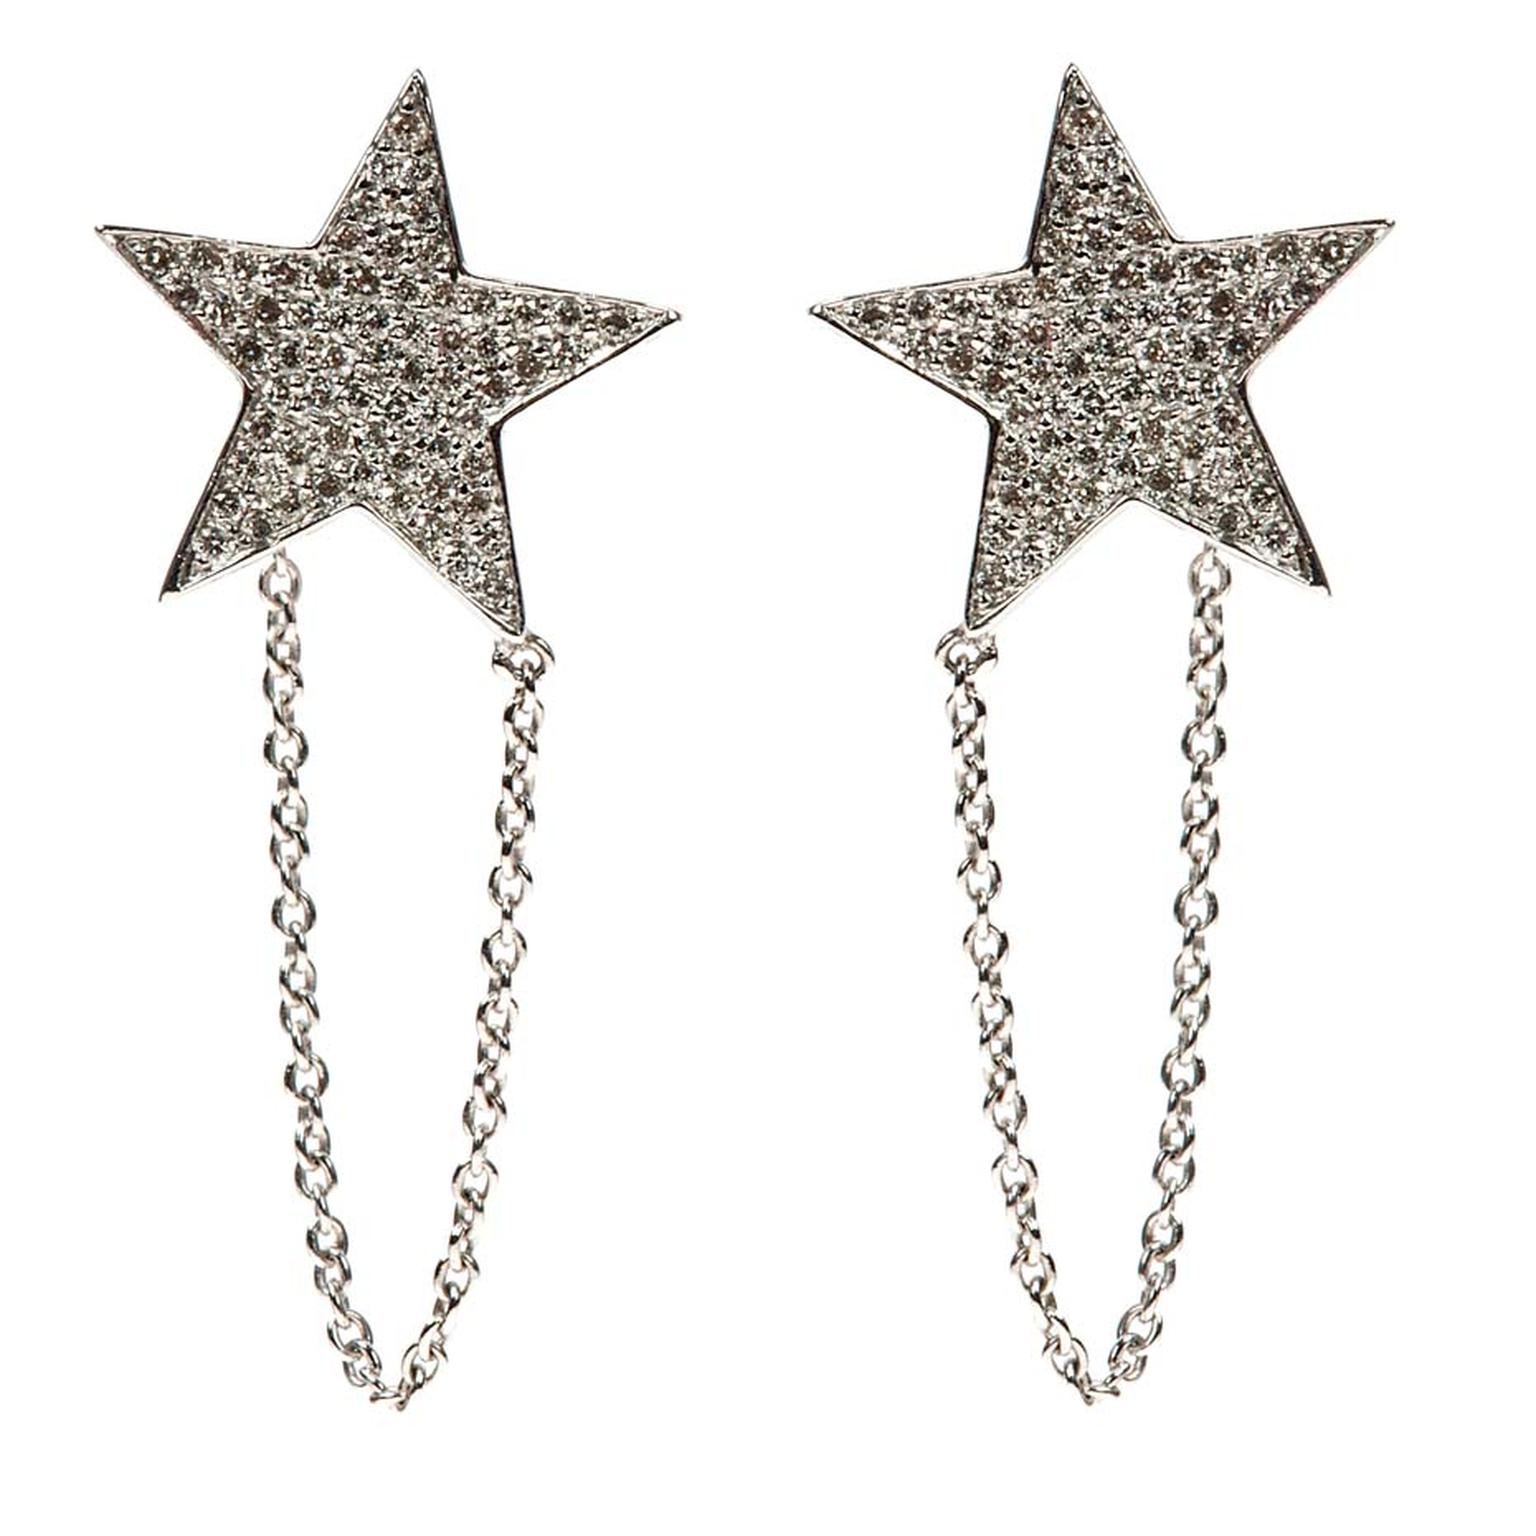 Nikos Koulis Star earrings in white gold encrusted with white diamonds can be worn in the traditional way on the ear lobe or positioned higher up on the ear.